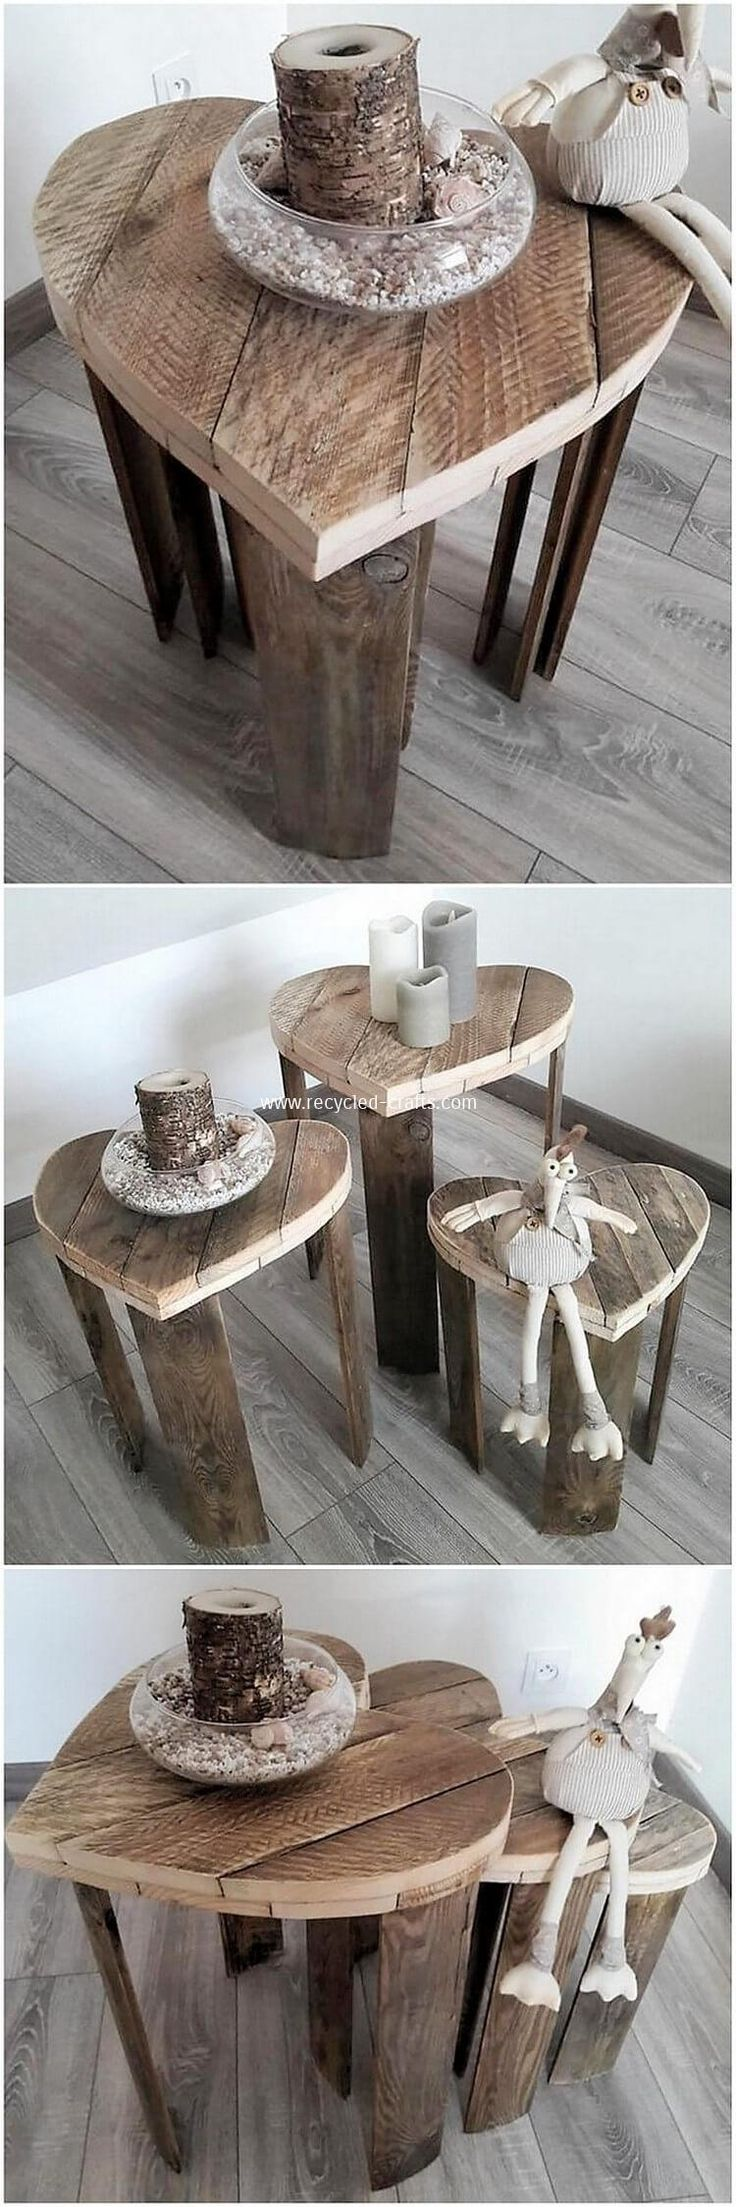 40 Latest Wooden Pallet Furniture Ideas and Designs #designs #wood pallet furniture # ideas #newest